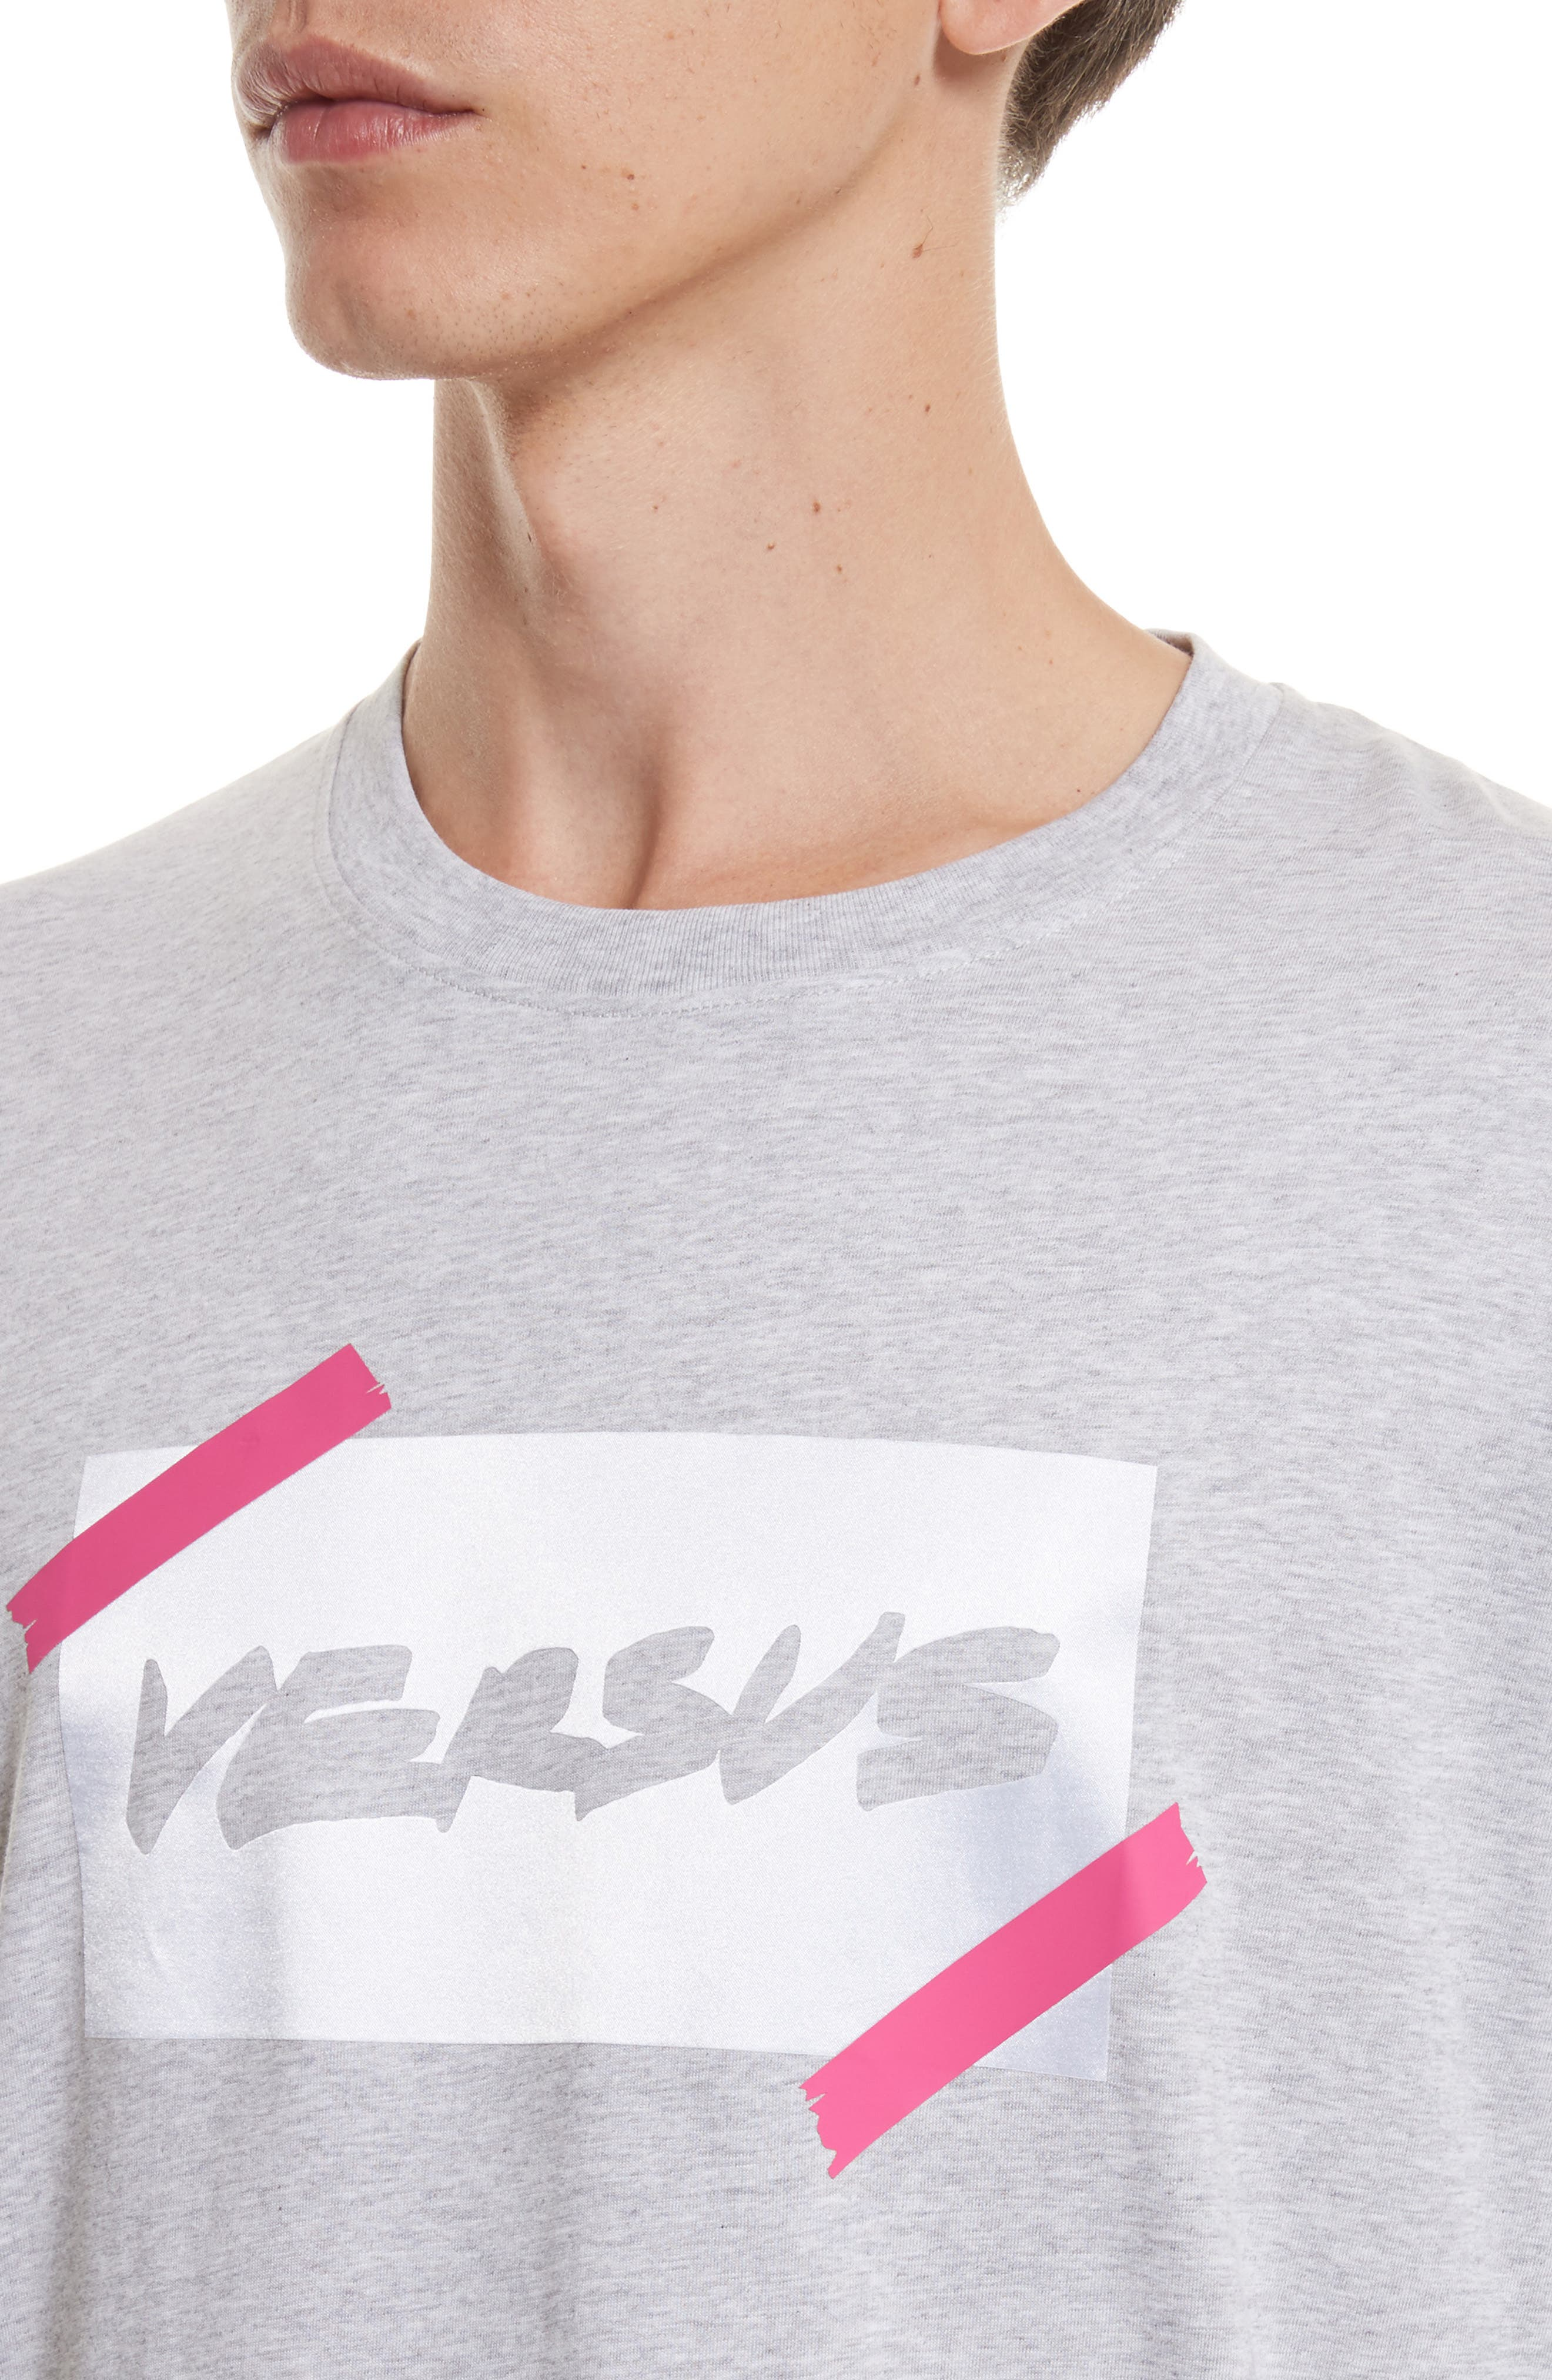 VERSUS by Versace Tape Logo Graphic T-Shirt,                             Alternate thumbnail 4, color,                             052